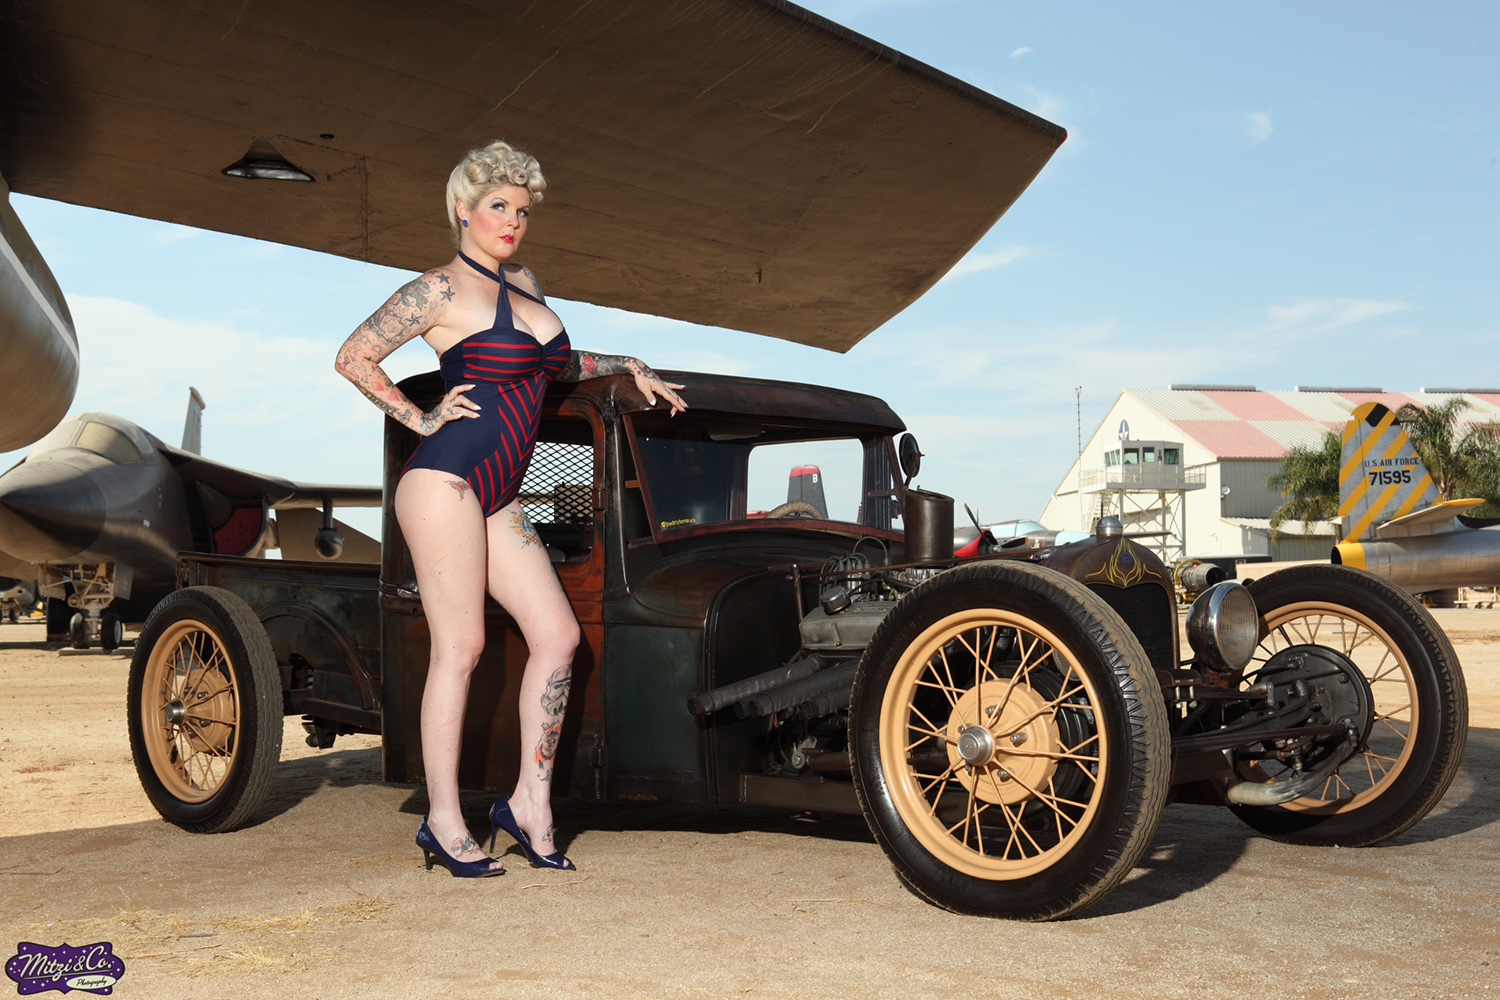 Boston Bombshell Pinup of the Week